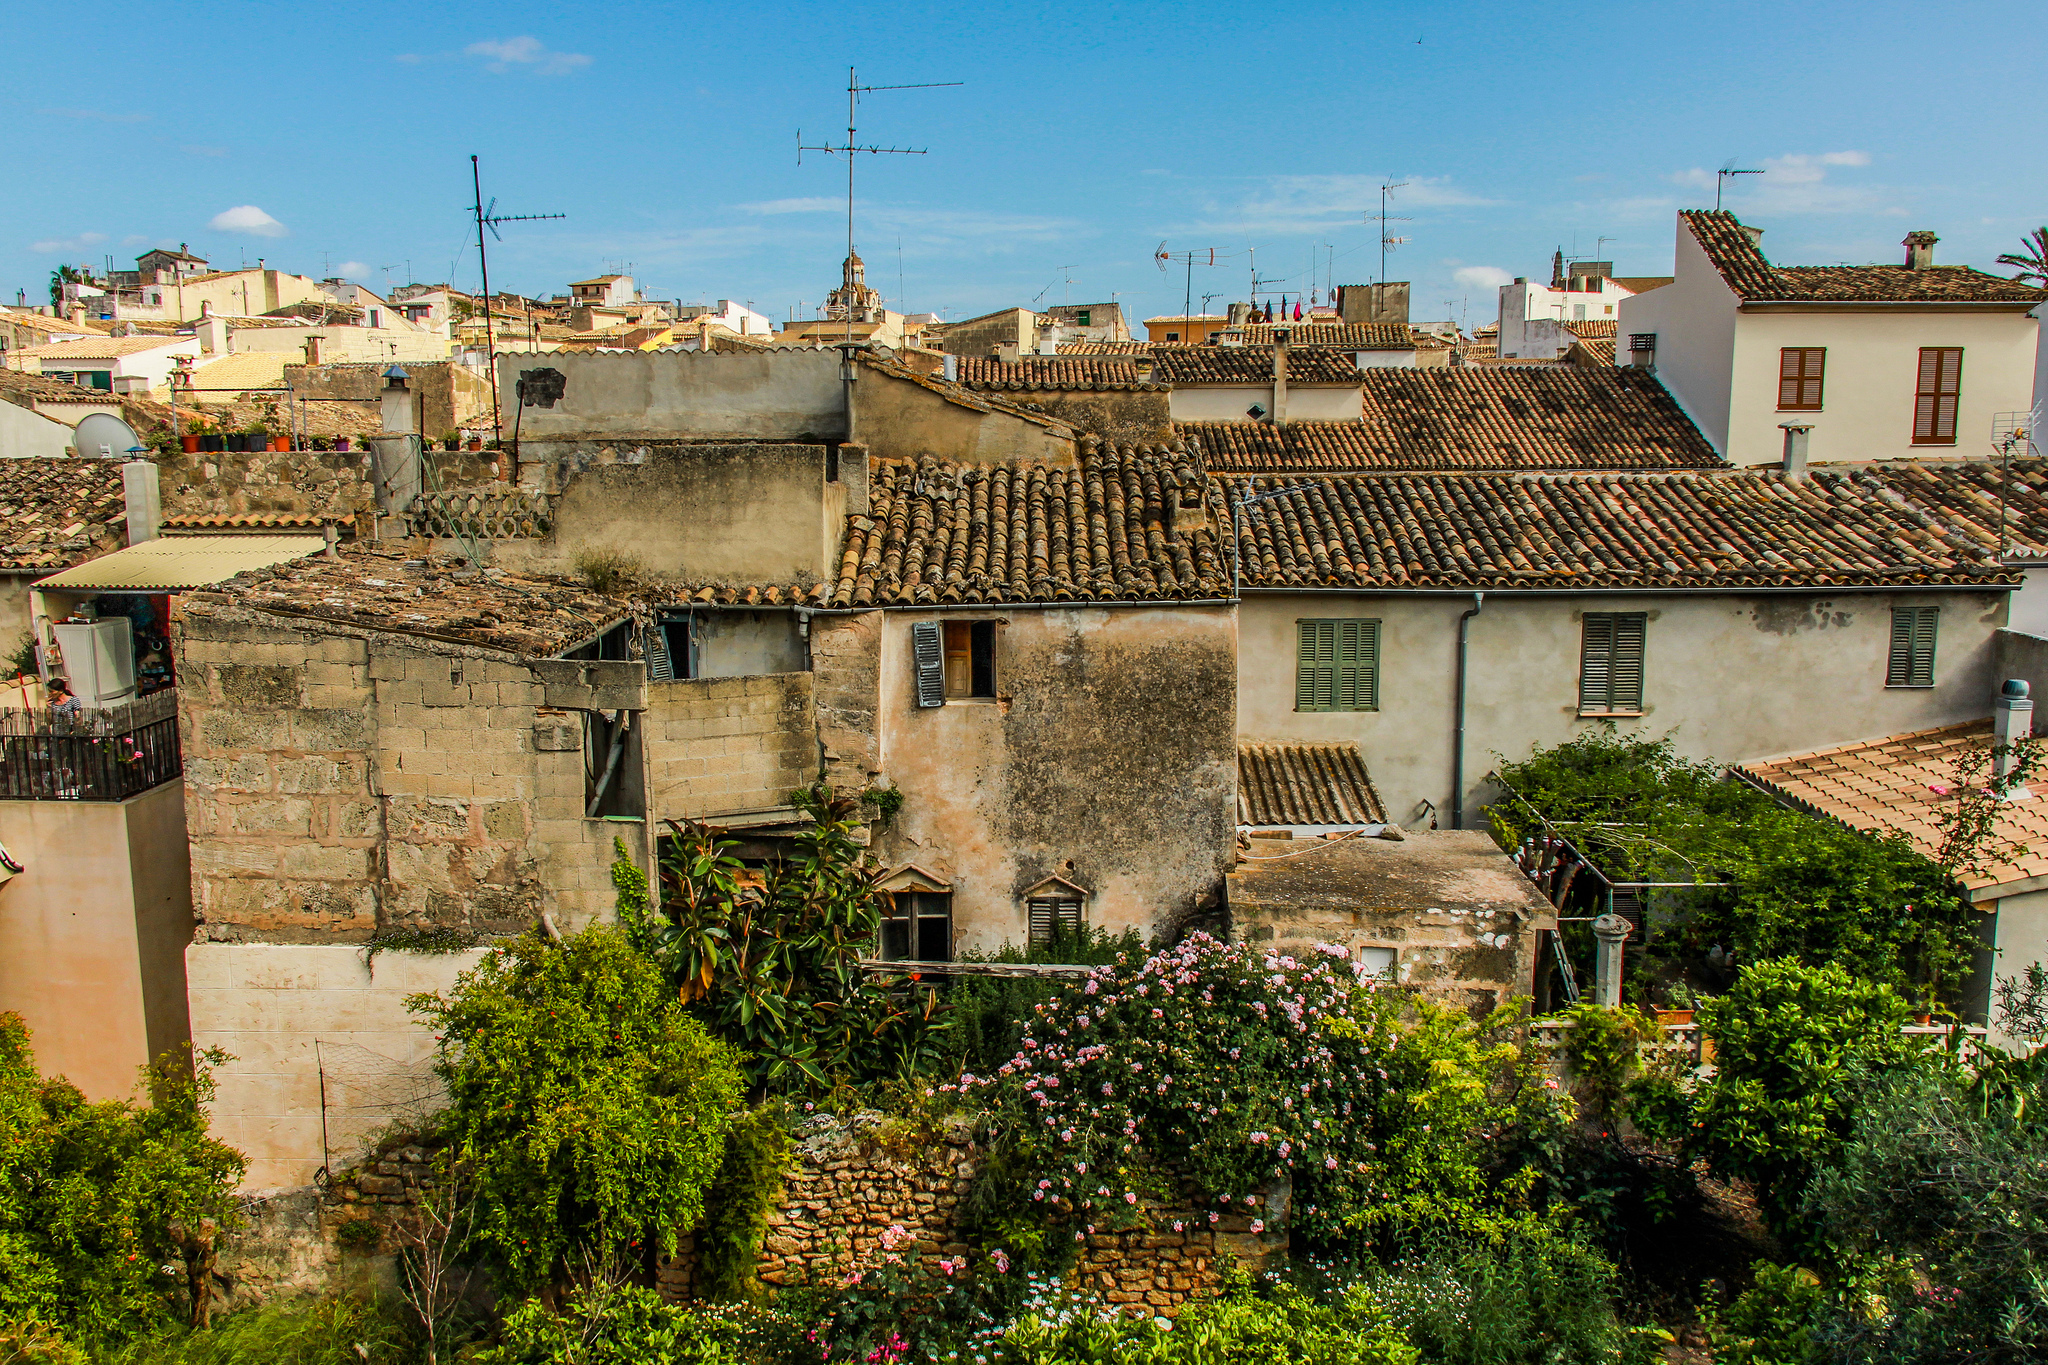 The old town of Alcudia is located a few km in land from the resorts along Alcudia Bay